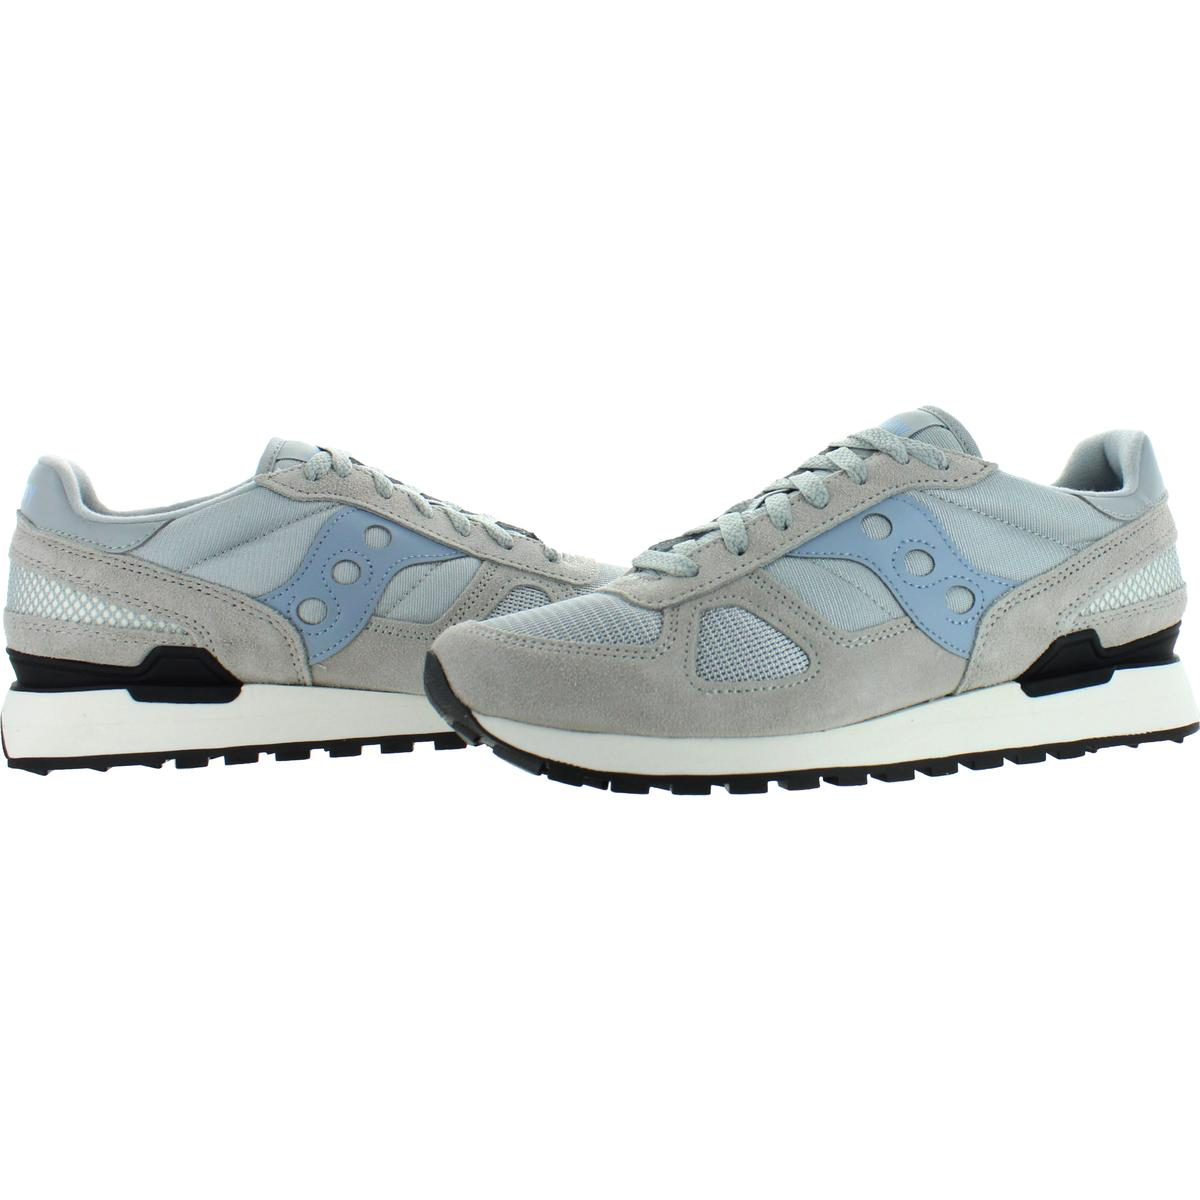 Saucony-Mens-Shadow-Original-Trainers-Suede-Comfort-Sneakers-Shoes-BHFO-0431 miniatuur 16